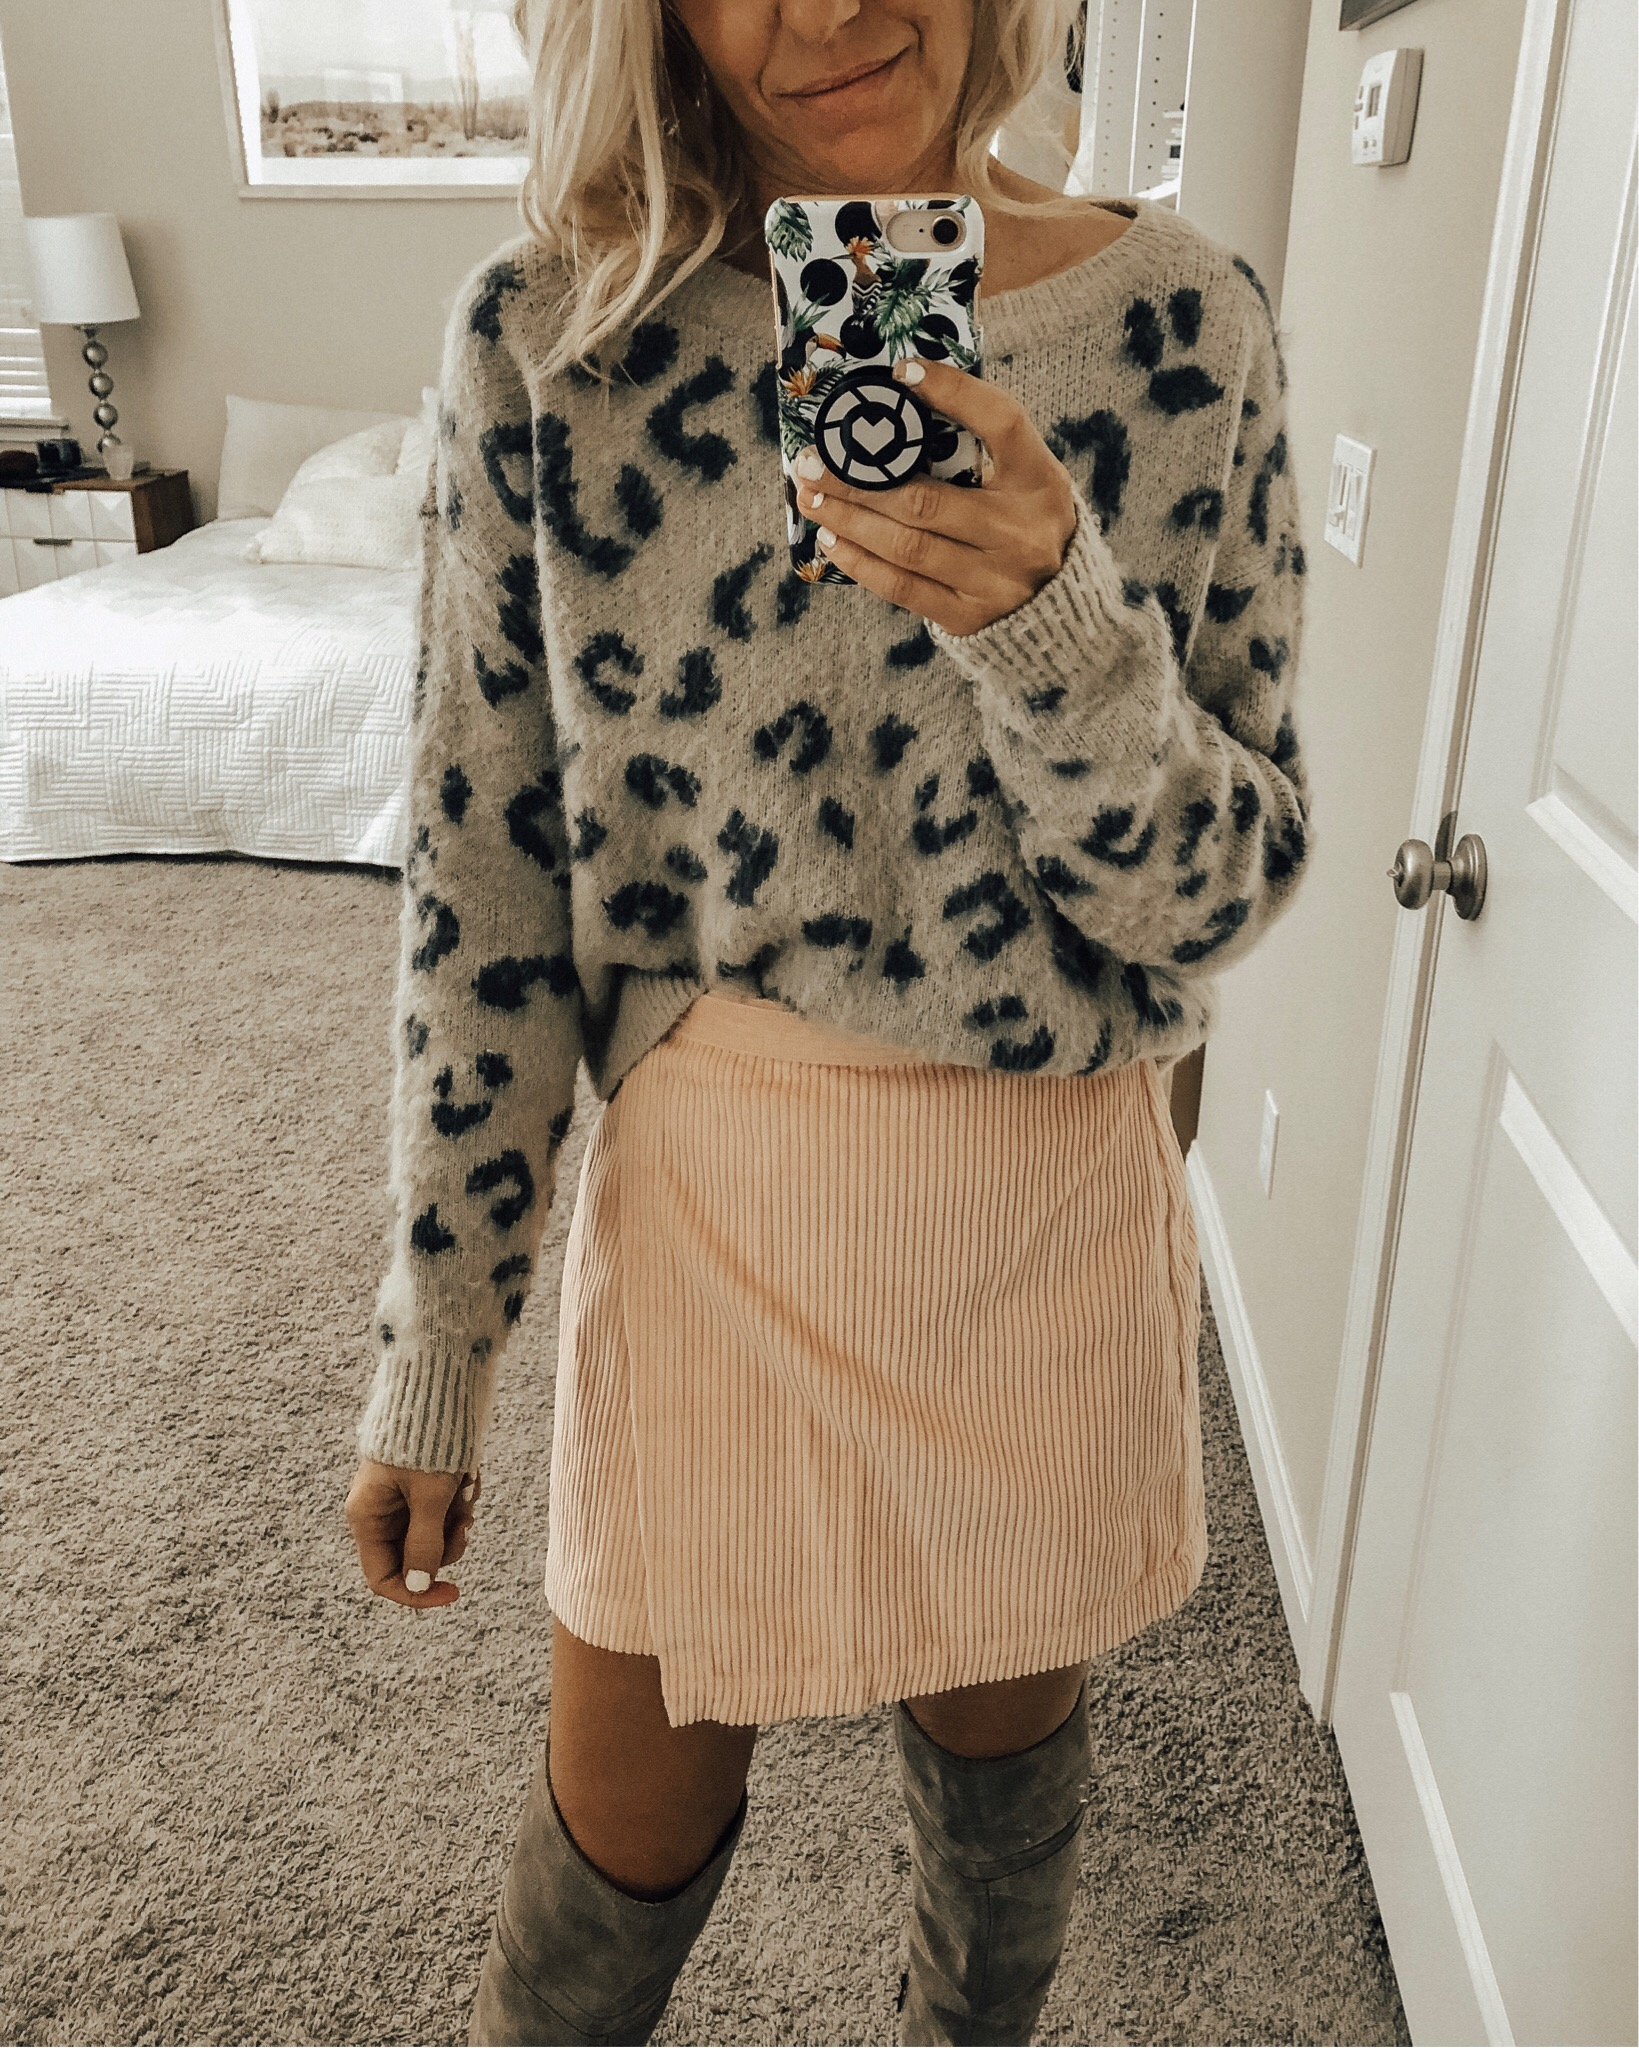 DECEMBER TOP 10- Jaclyn De Leon Style + leopard cozy sweater + pink skirt + animal print + sweater weather + selfie + winter style + otk boots + abercrombie